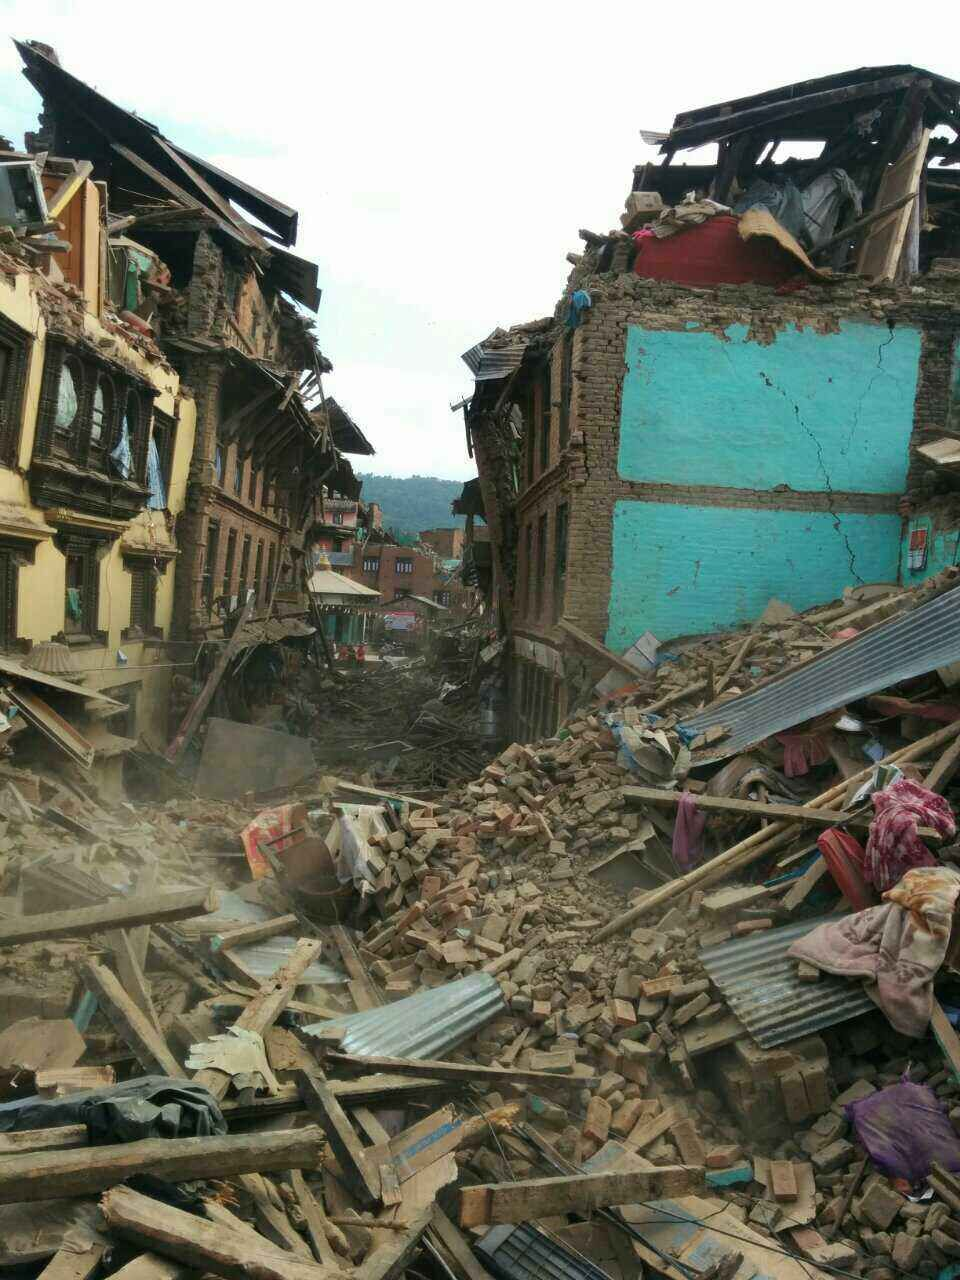 At least 114 killed in #Nepal Magnitude 8.1 #earthquake: Interior Ministry pic.twitter.com/cubHFDa17h A 'mega earthquake' is likely to strike the Himalayas this century, causing catastrophic landslides and floods and killing more than 40,000 people, Indian and US geologists have warned.  Scientists from the National Geophysical Research Institute of India and Stanford University, United States, analysed the fault that separates the Asian and Indian continental plates.